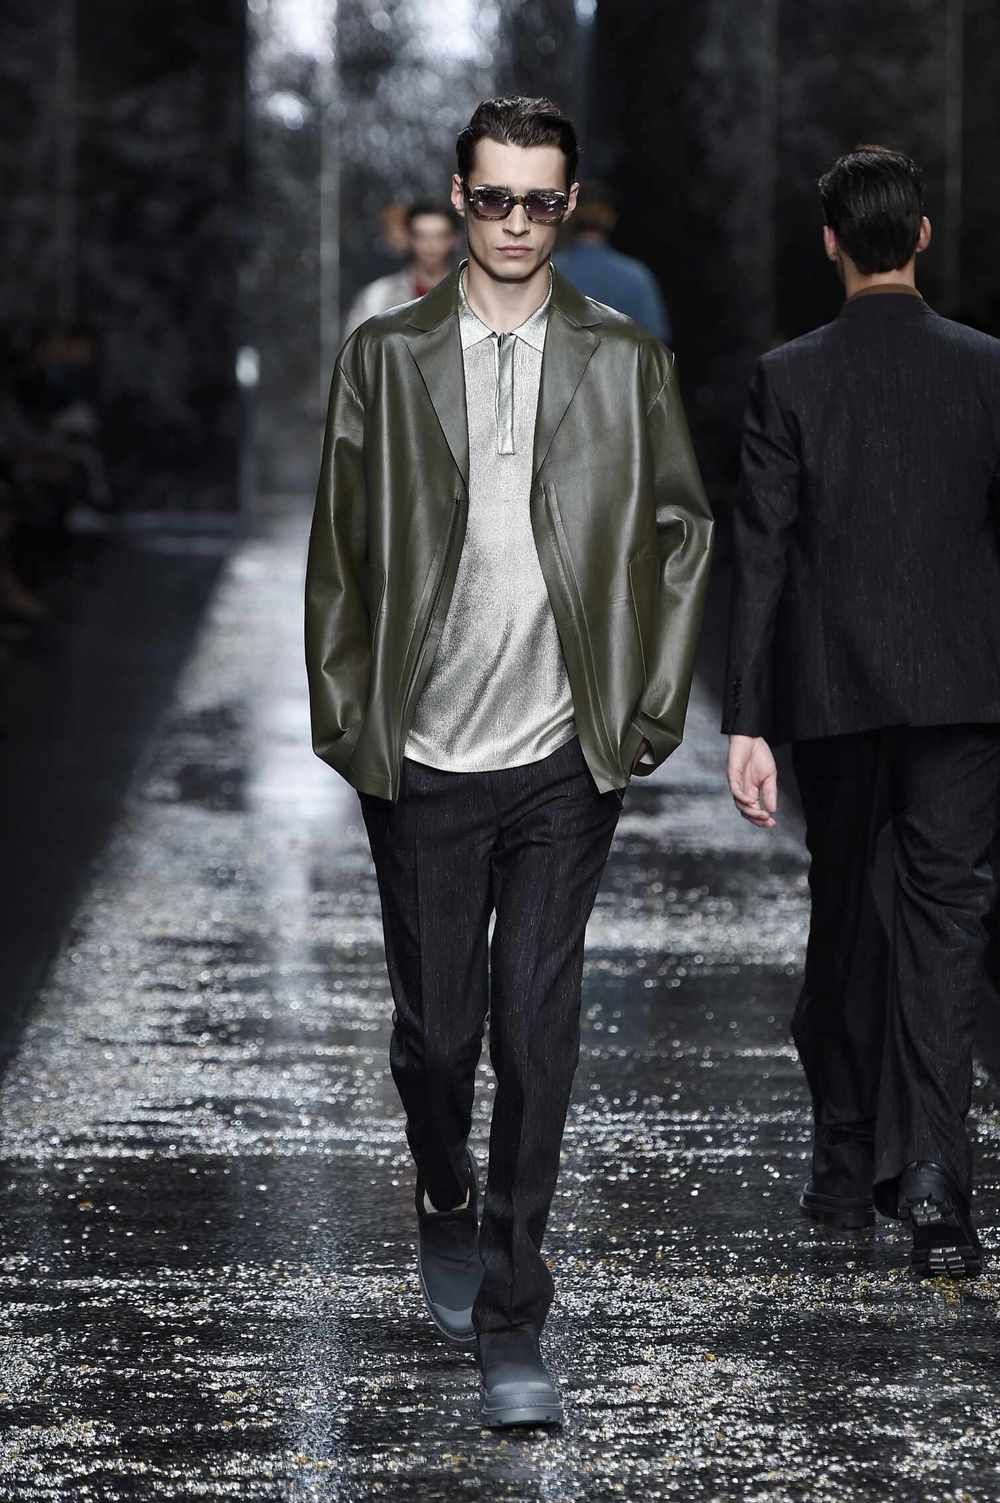 Fendi-Spring-Summer-2016-Menswear-Collection-Milan-Fashion-Week-Fashion-Show.jpg